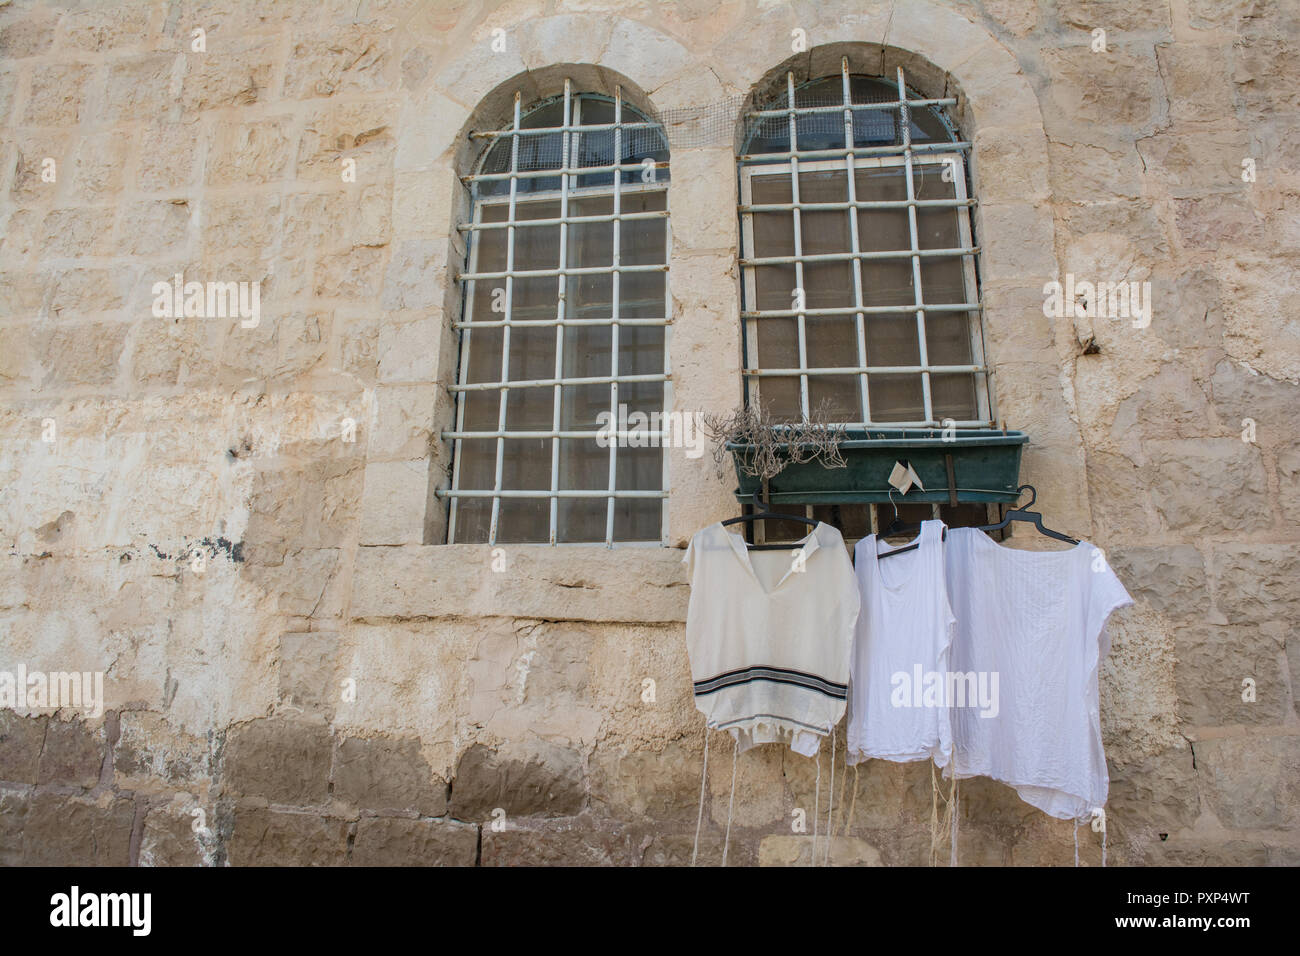 Jewish prayer clothing, Tallit Katans hanging out to dry next to a window in the old town of Jerusalem. - Stock Image